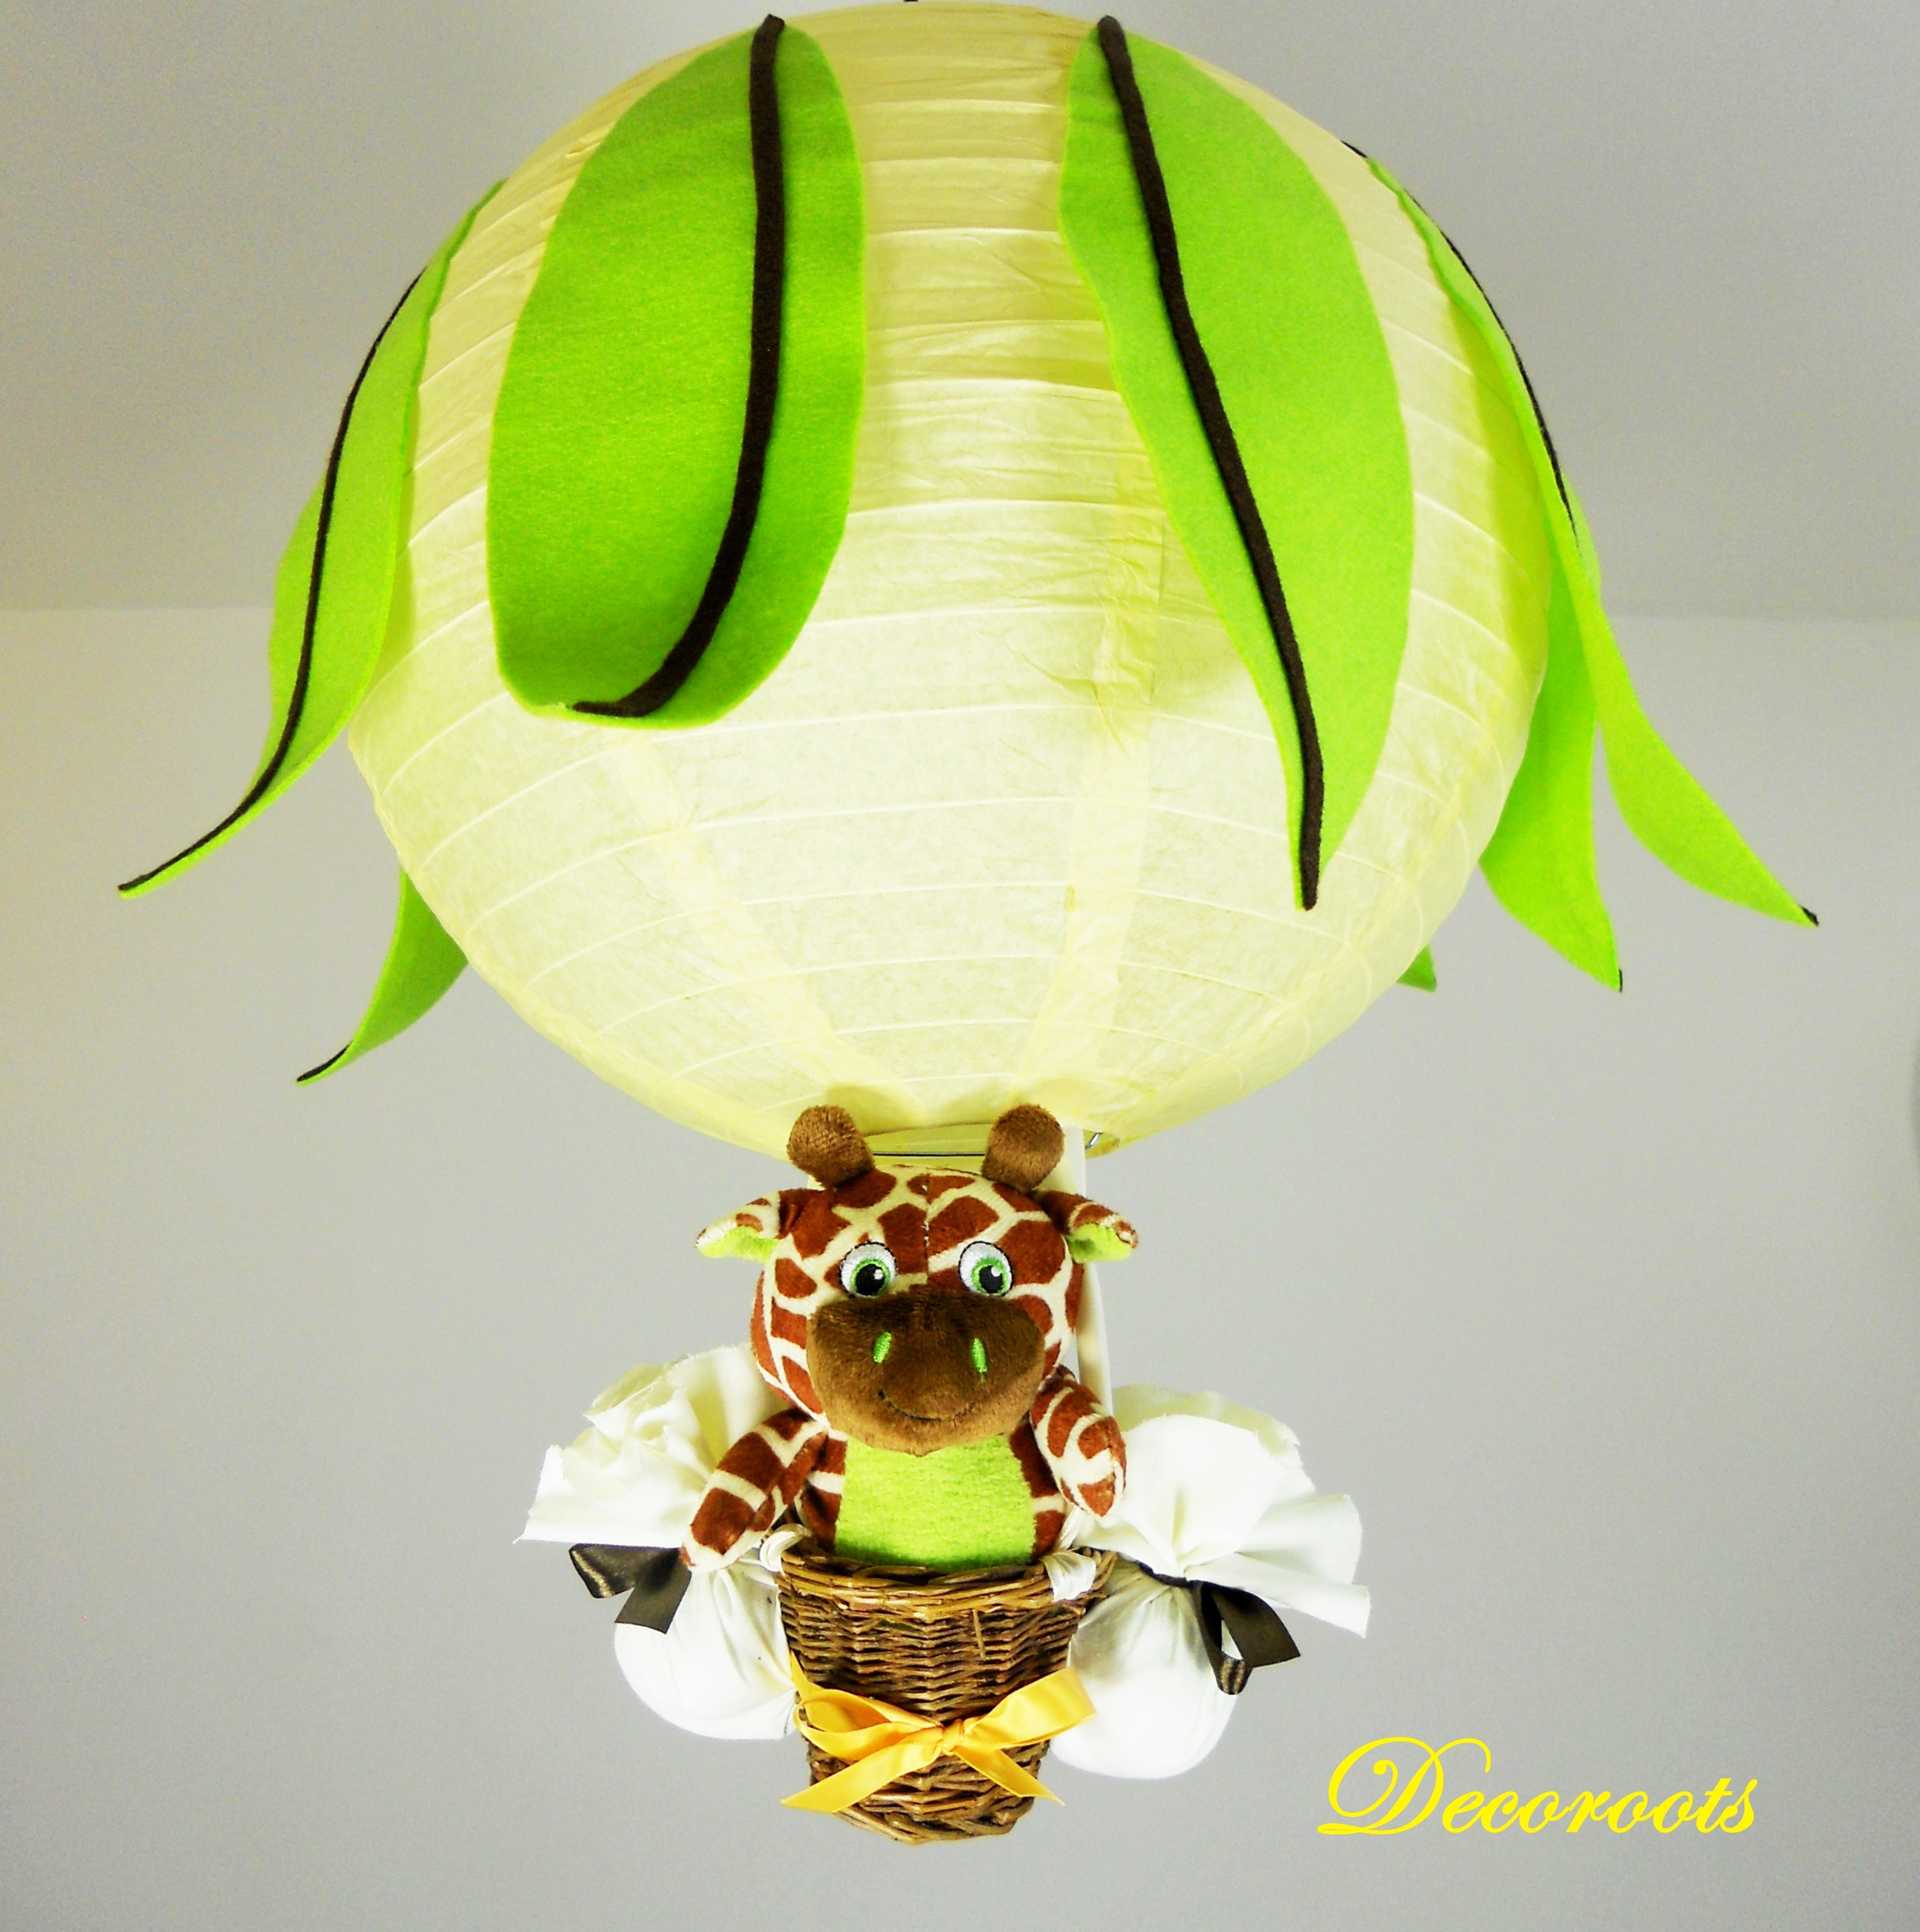 Enfant bébé Lampe lustre suspension abat jour gar§on decoroots